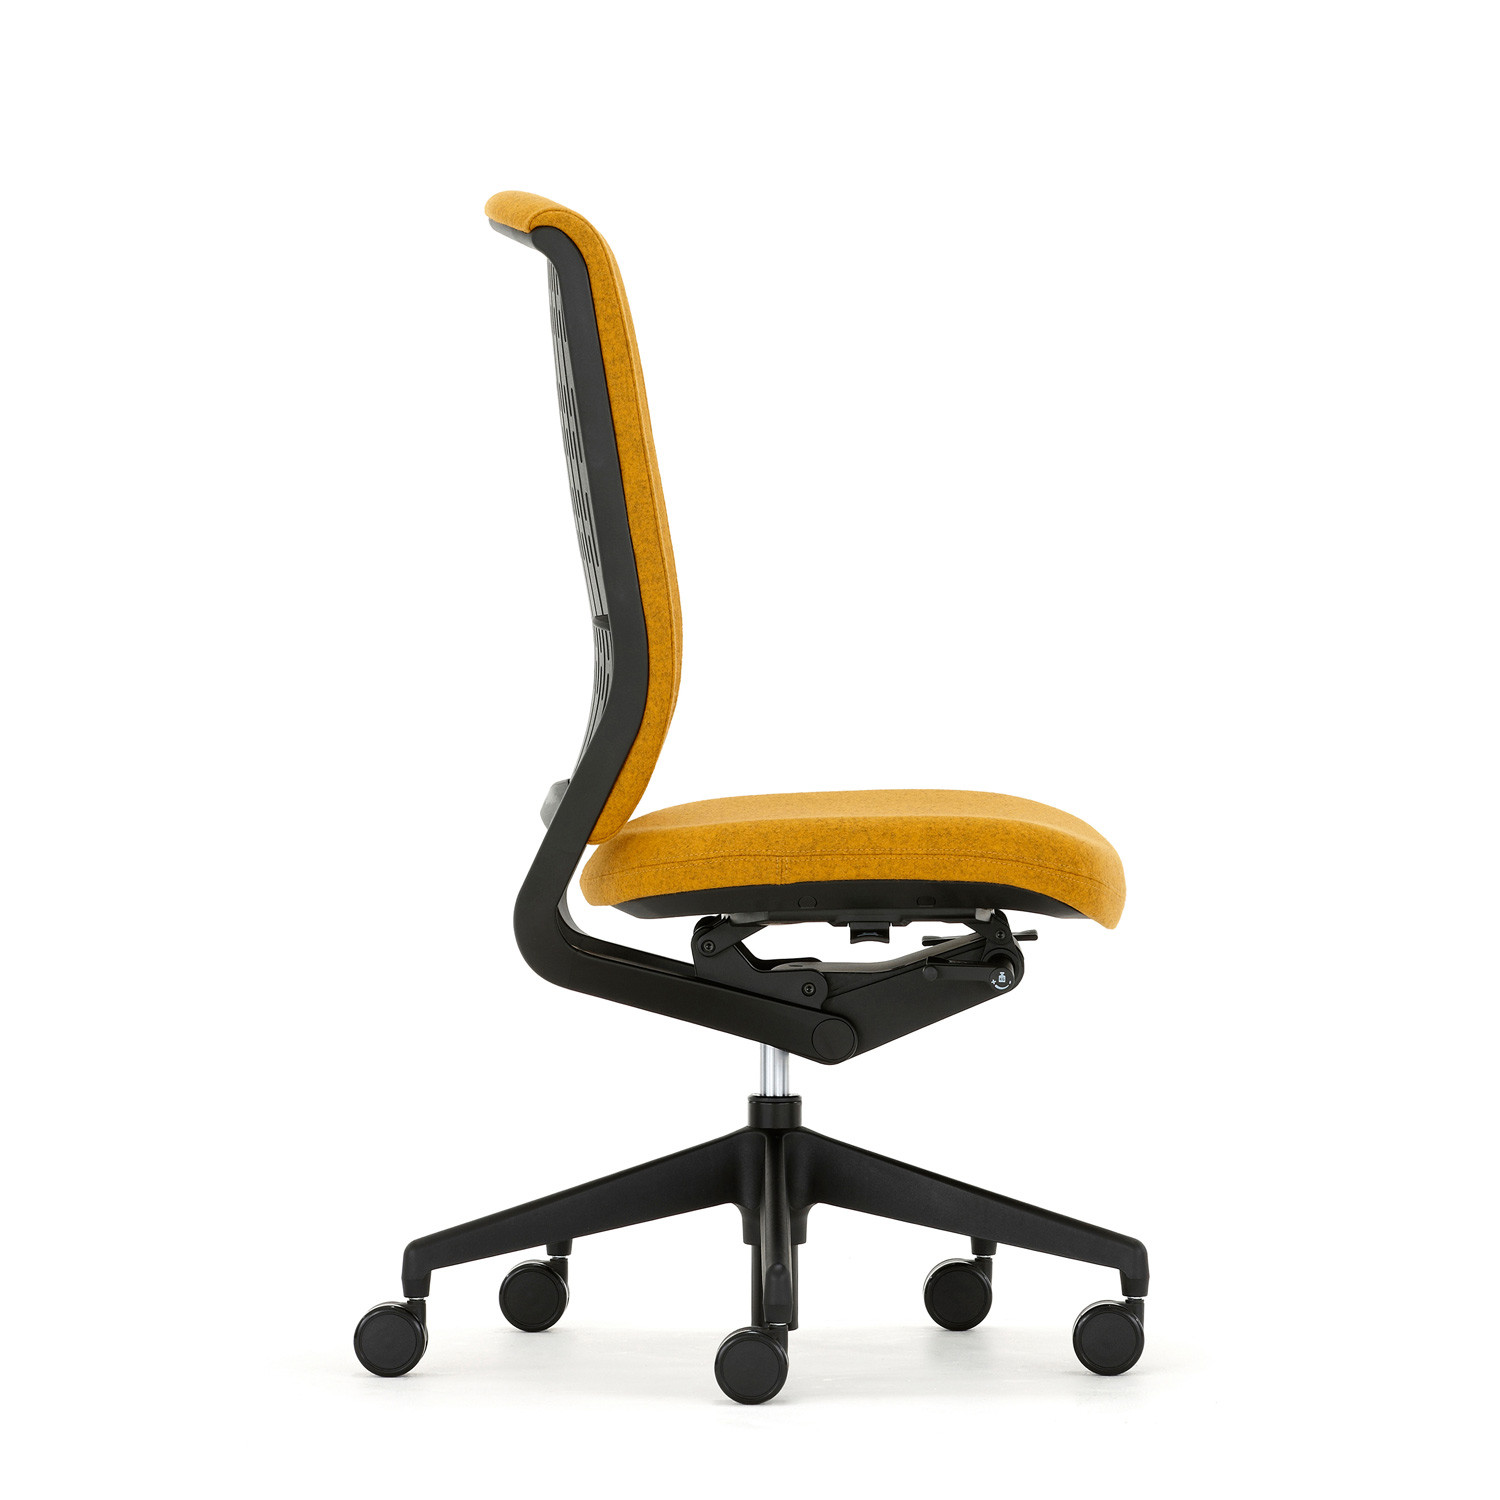 Evolve Ergonomic Desk Chair